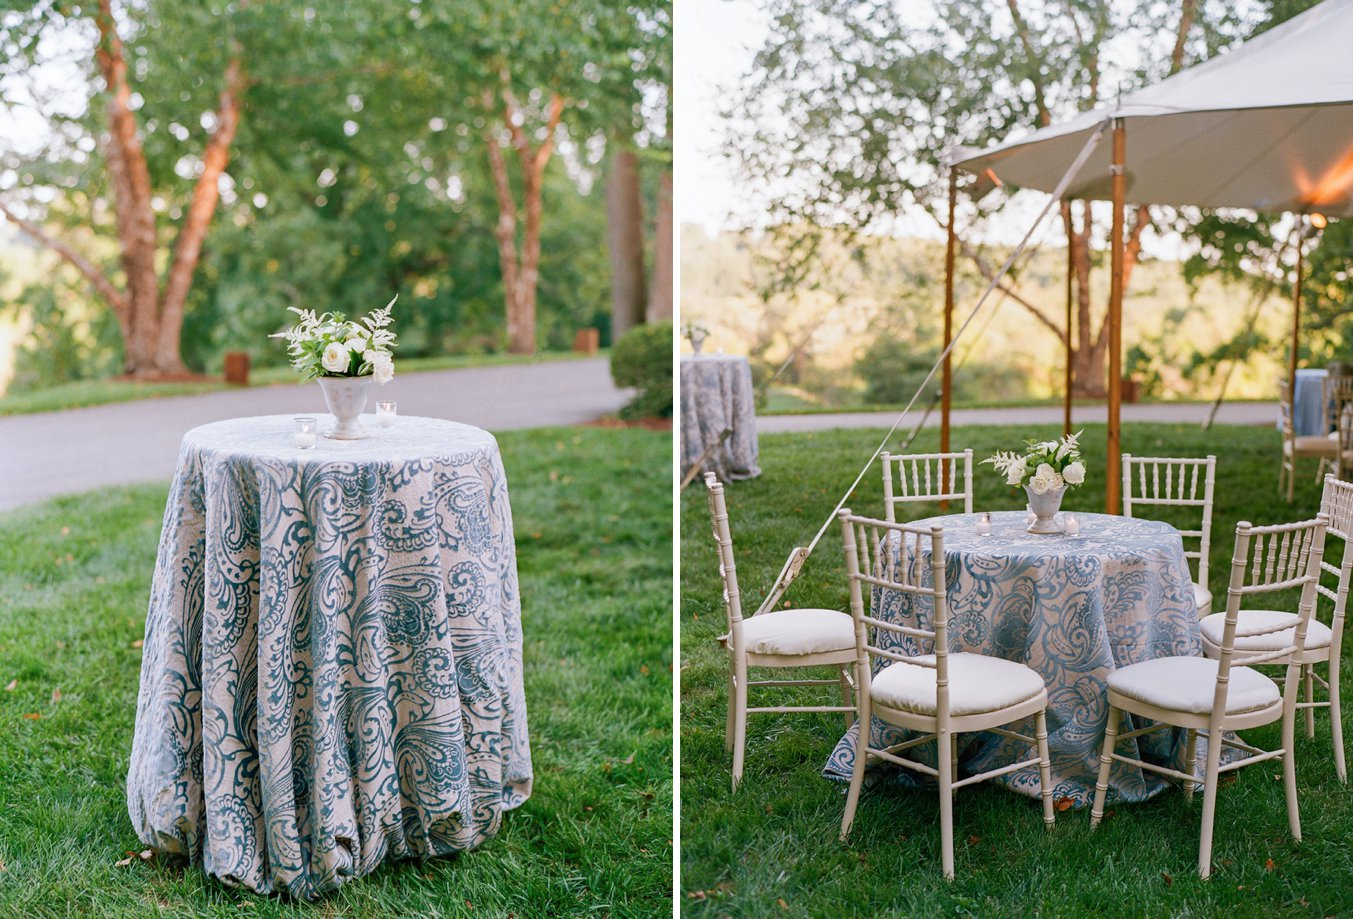 chair cover rentals baltimore md massage table embracing the best of maryland for a stunning outdoor wedding farmhouse dc 0606 jpg